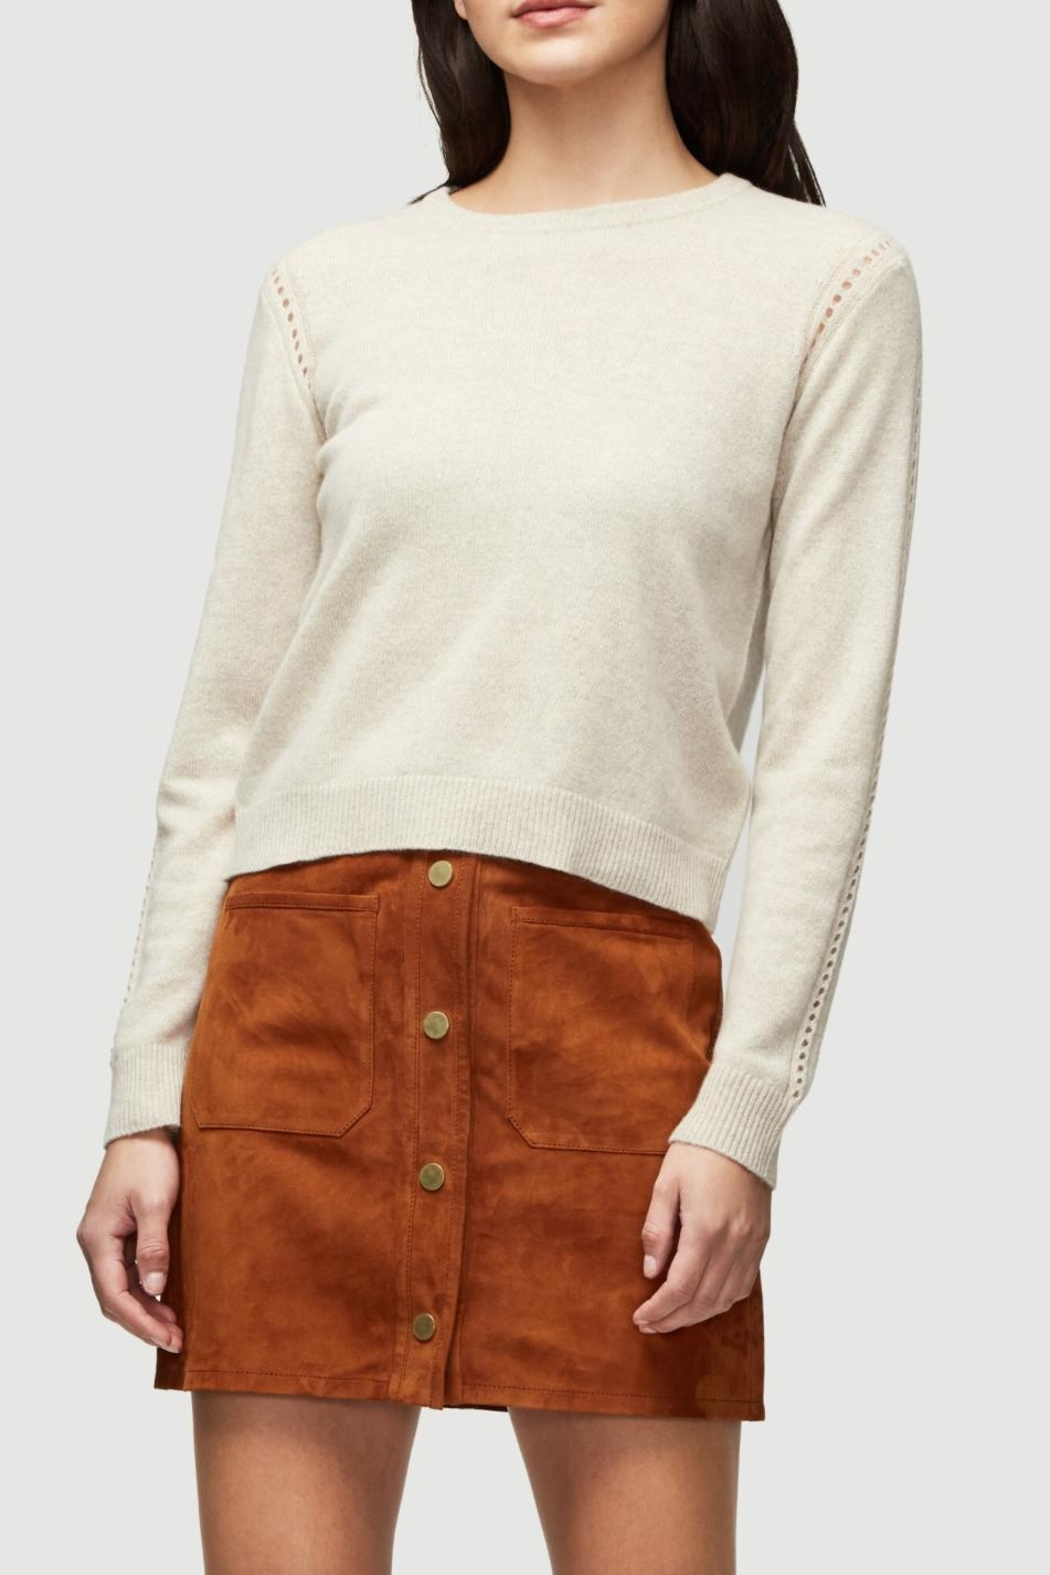 frame Oatmeal Cashmere Sweater - Main Image